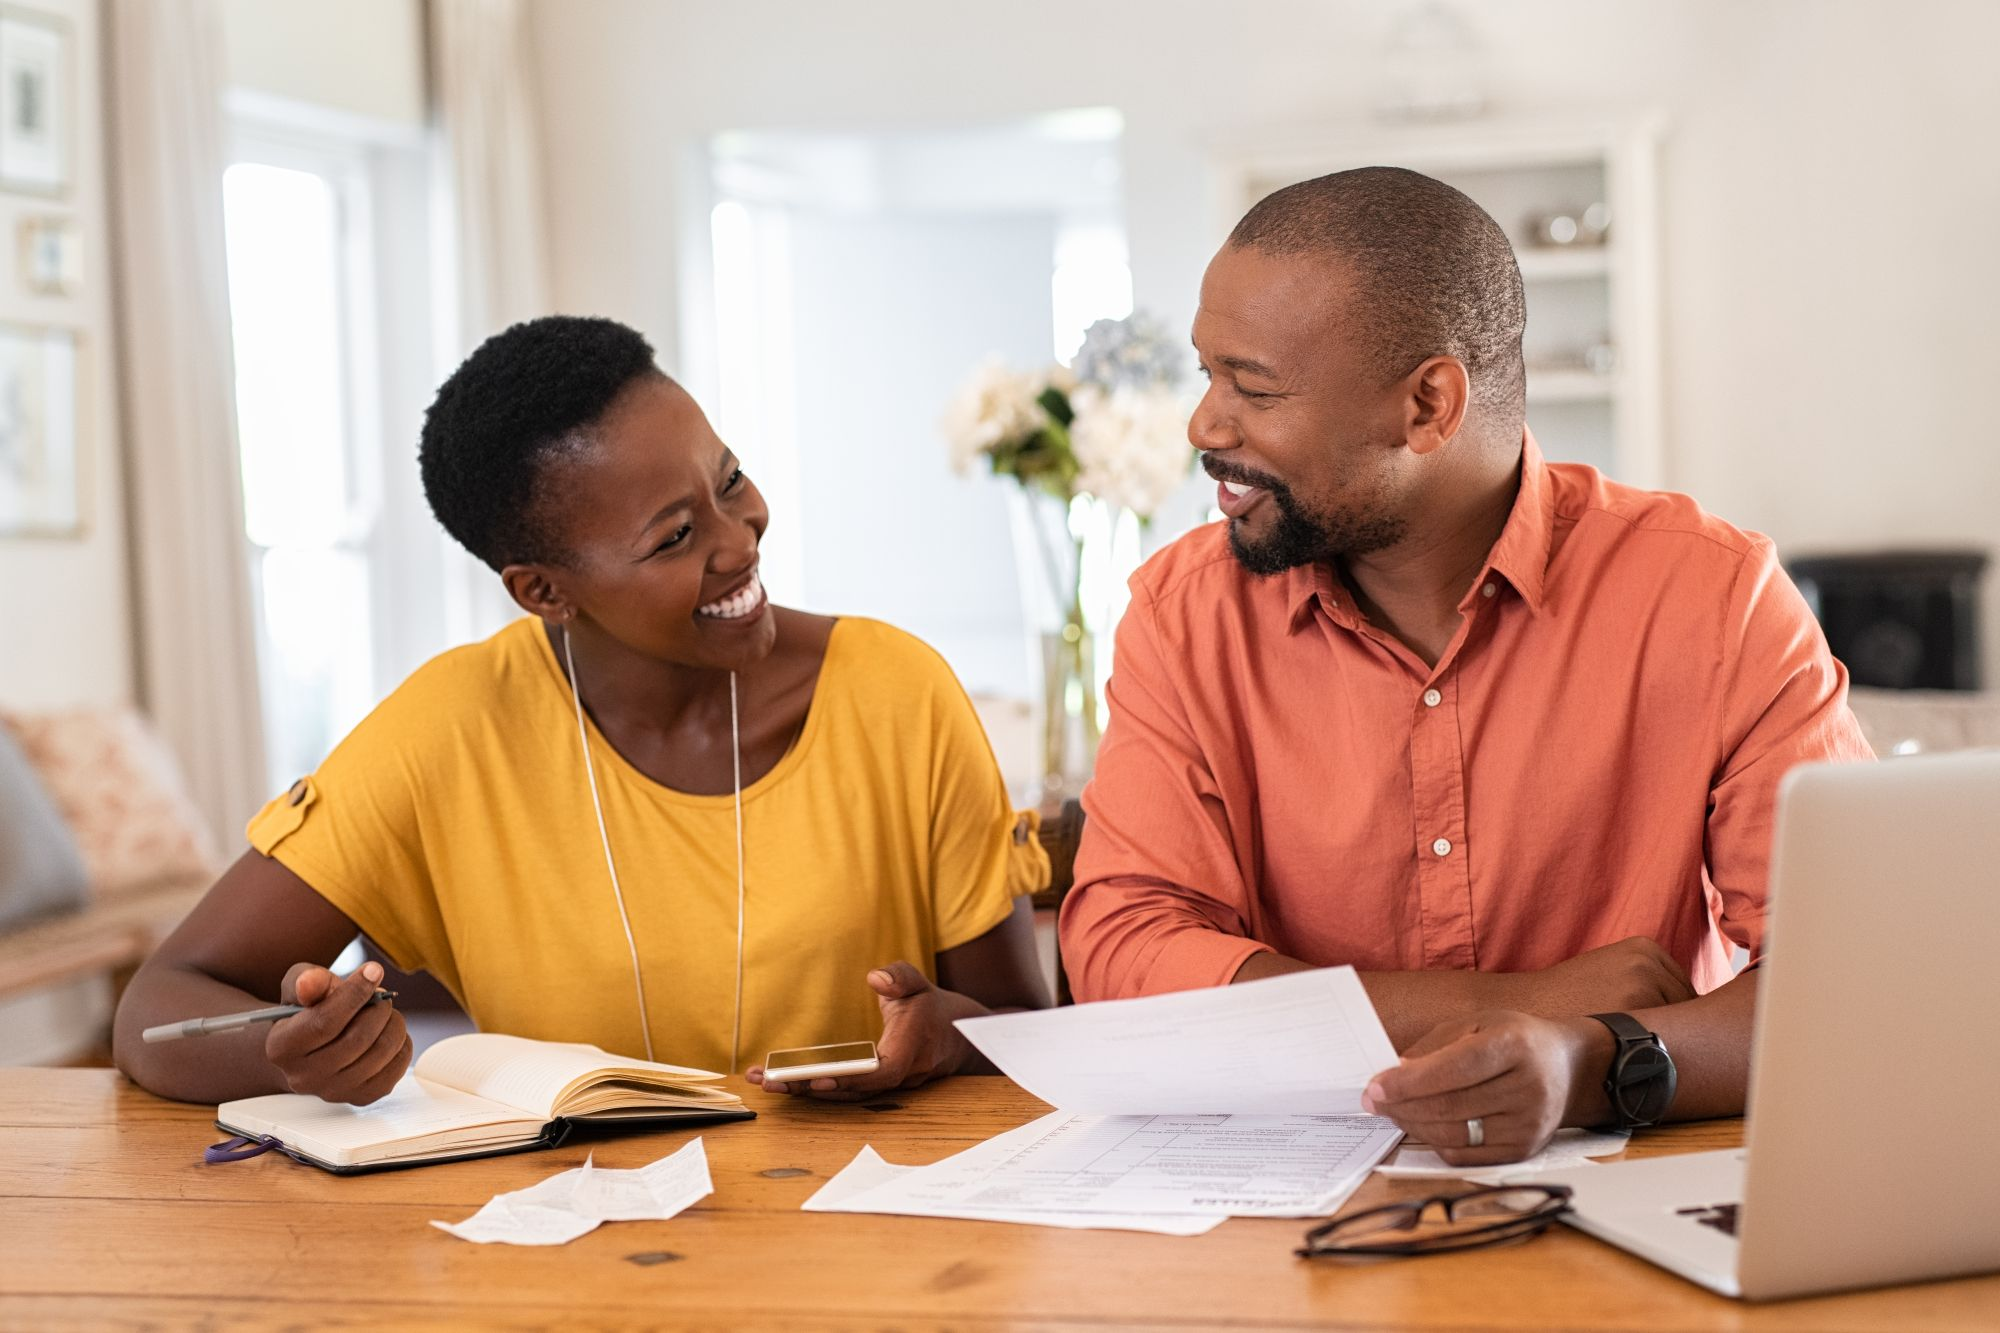 Financial Organization - 5 Easy Areas to Simplify (and Improve) Your Financial Life | EP Wealth